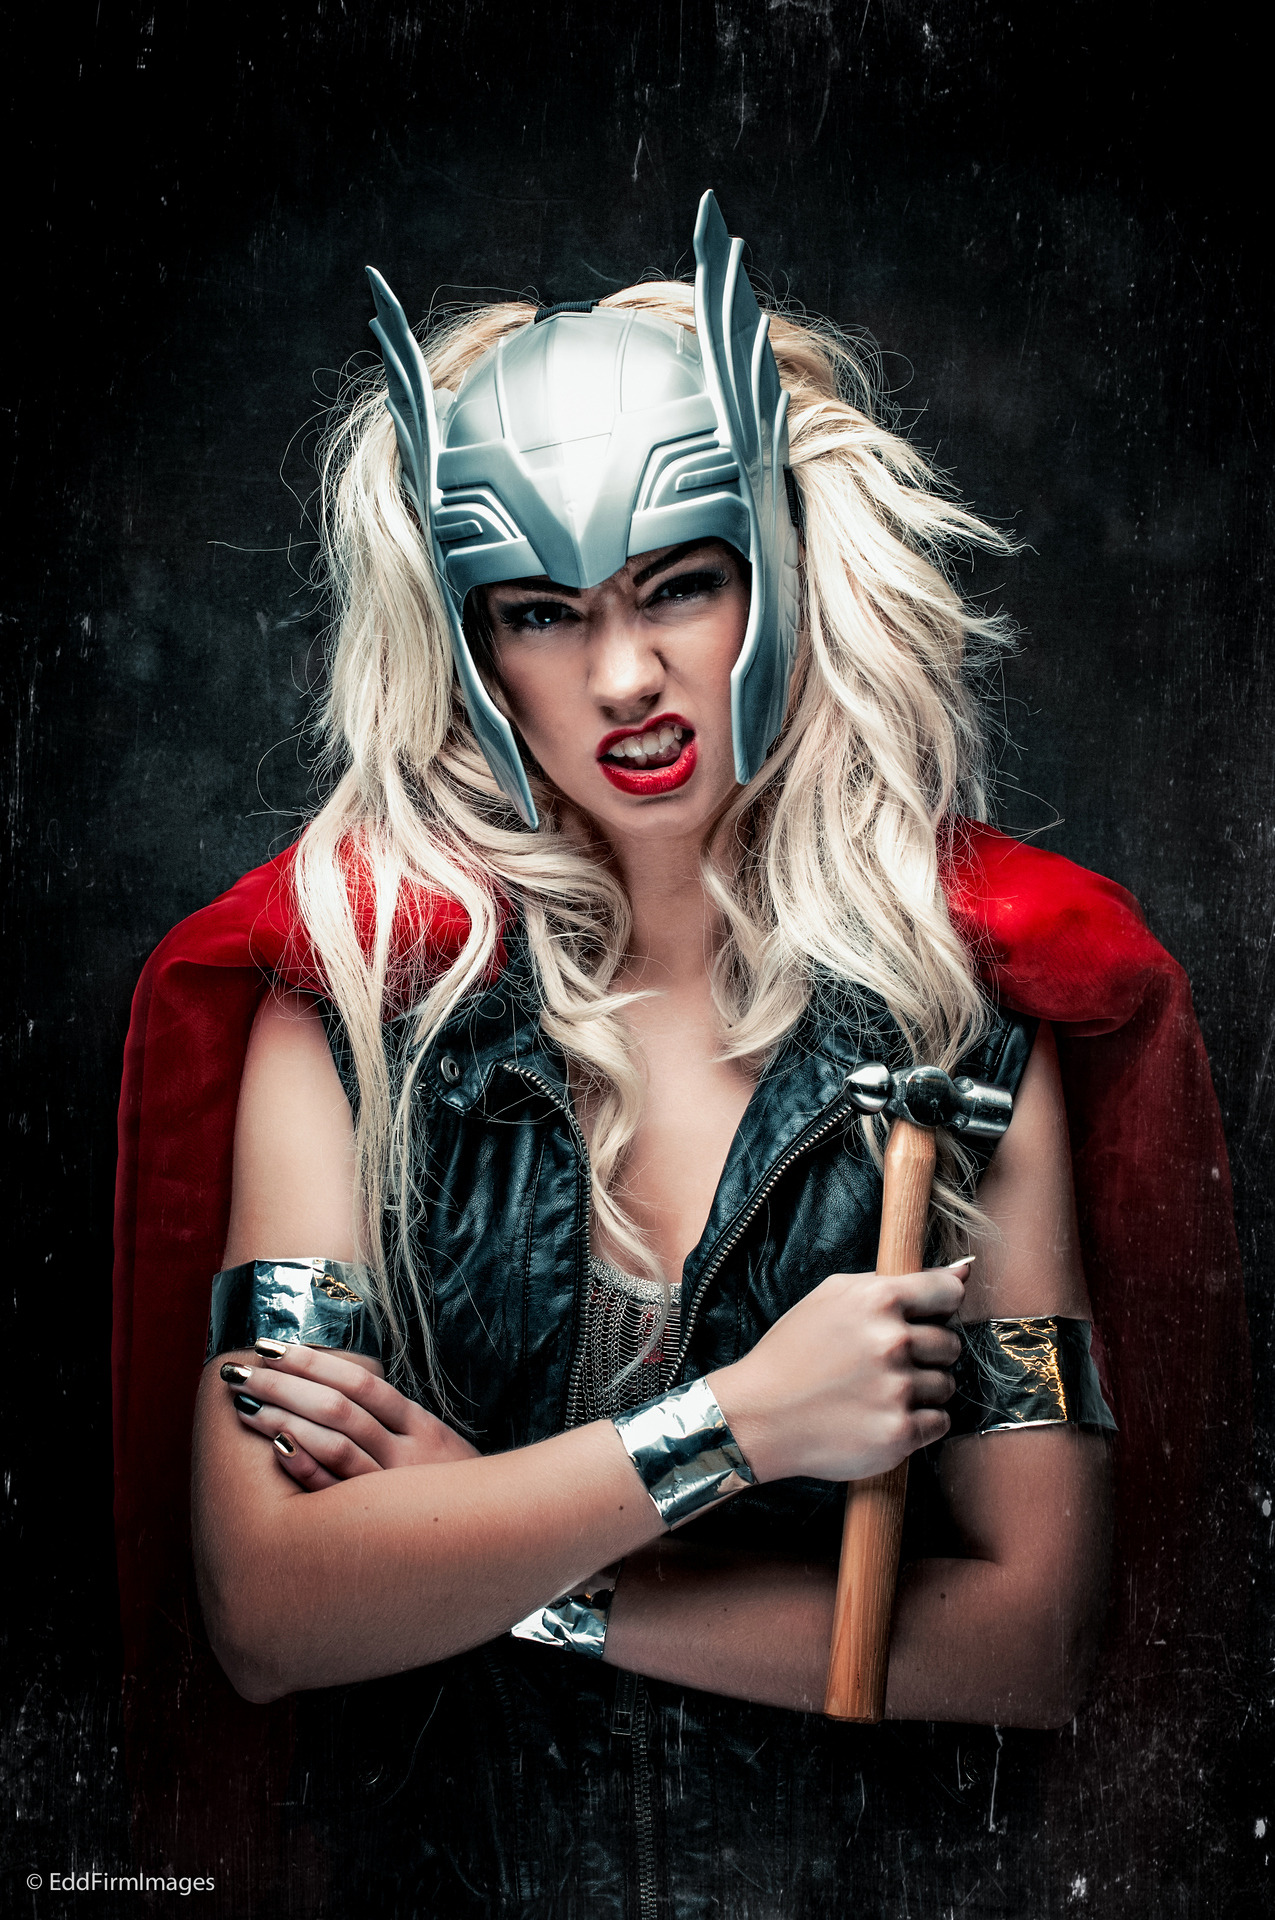 Better copy of the Thor photo. Me by Edd Firm